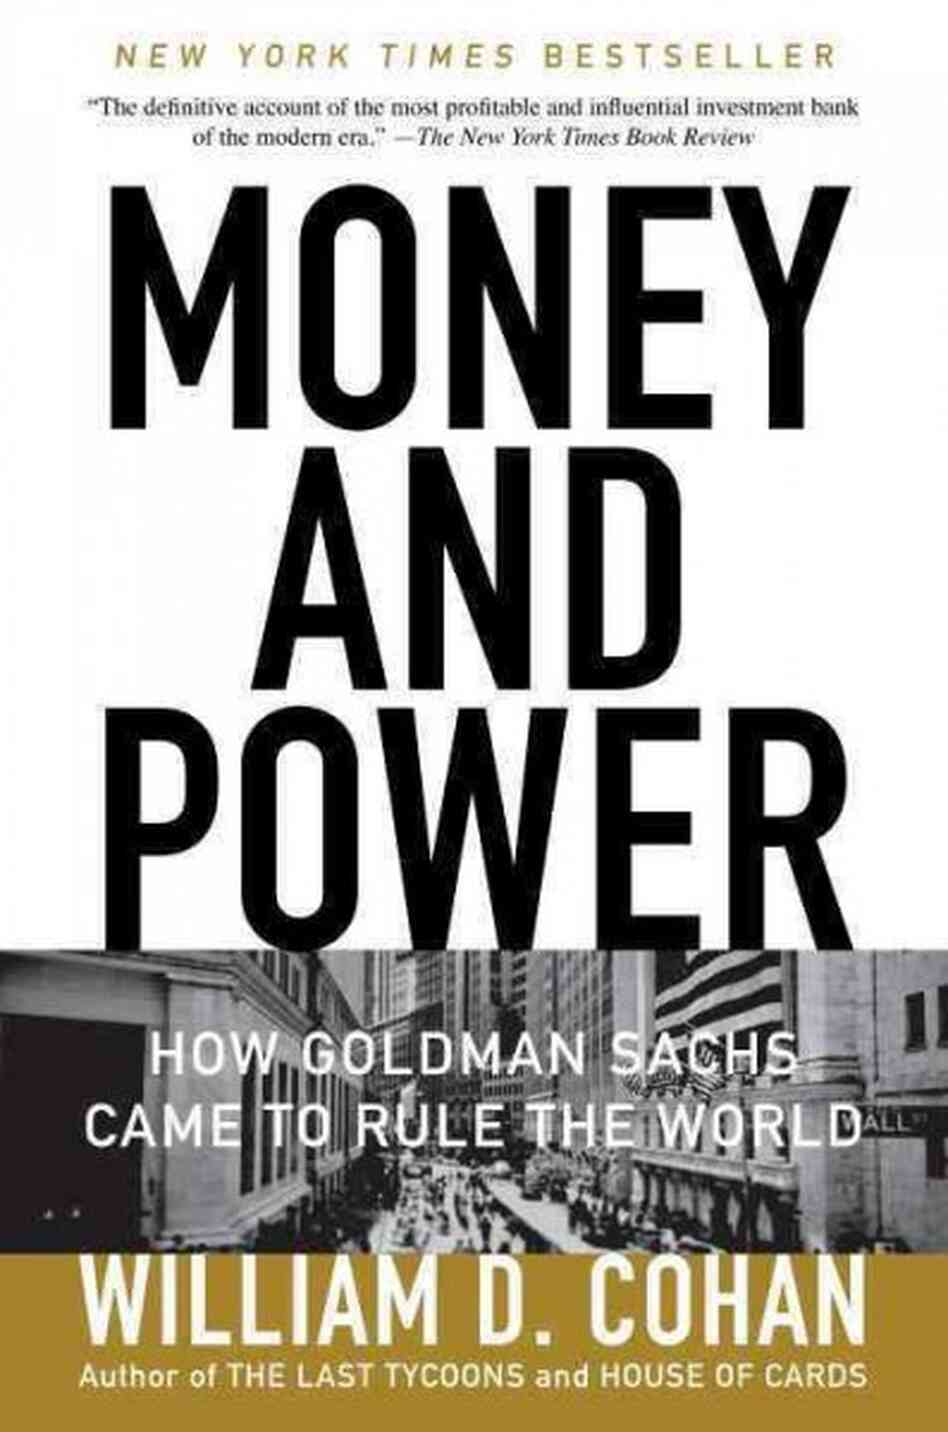 money and power Money and power has 69 ratings and 10 reviews tim said: ellul's money and power is just as powerful as i remembered it to be he calls for individual ac.